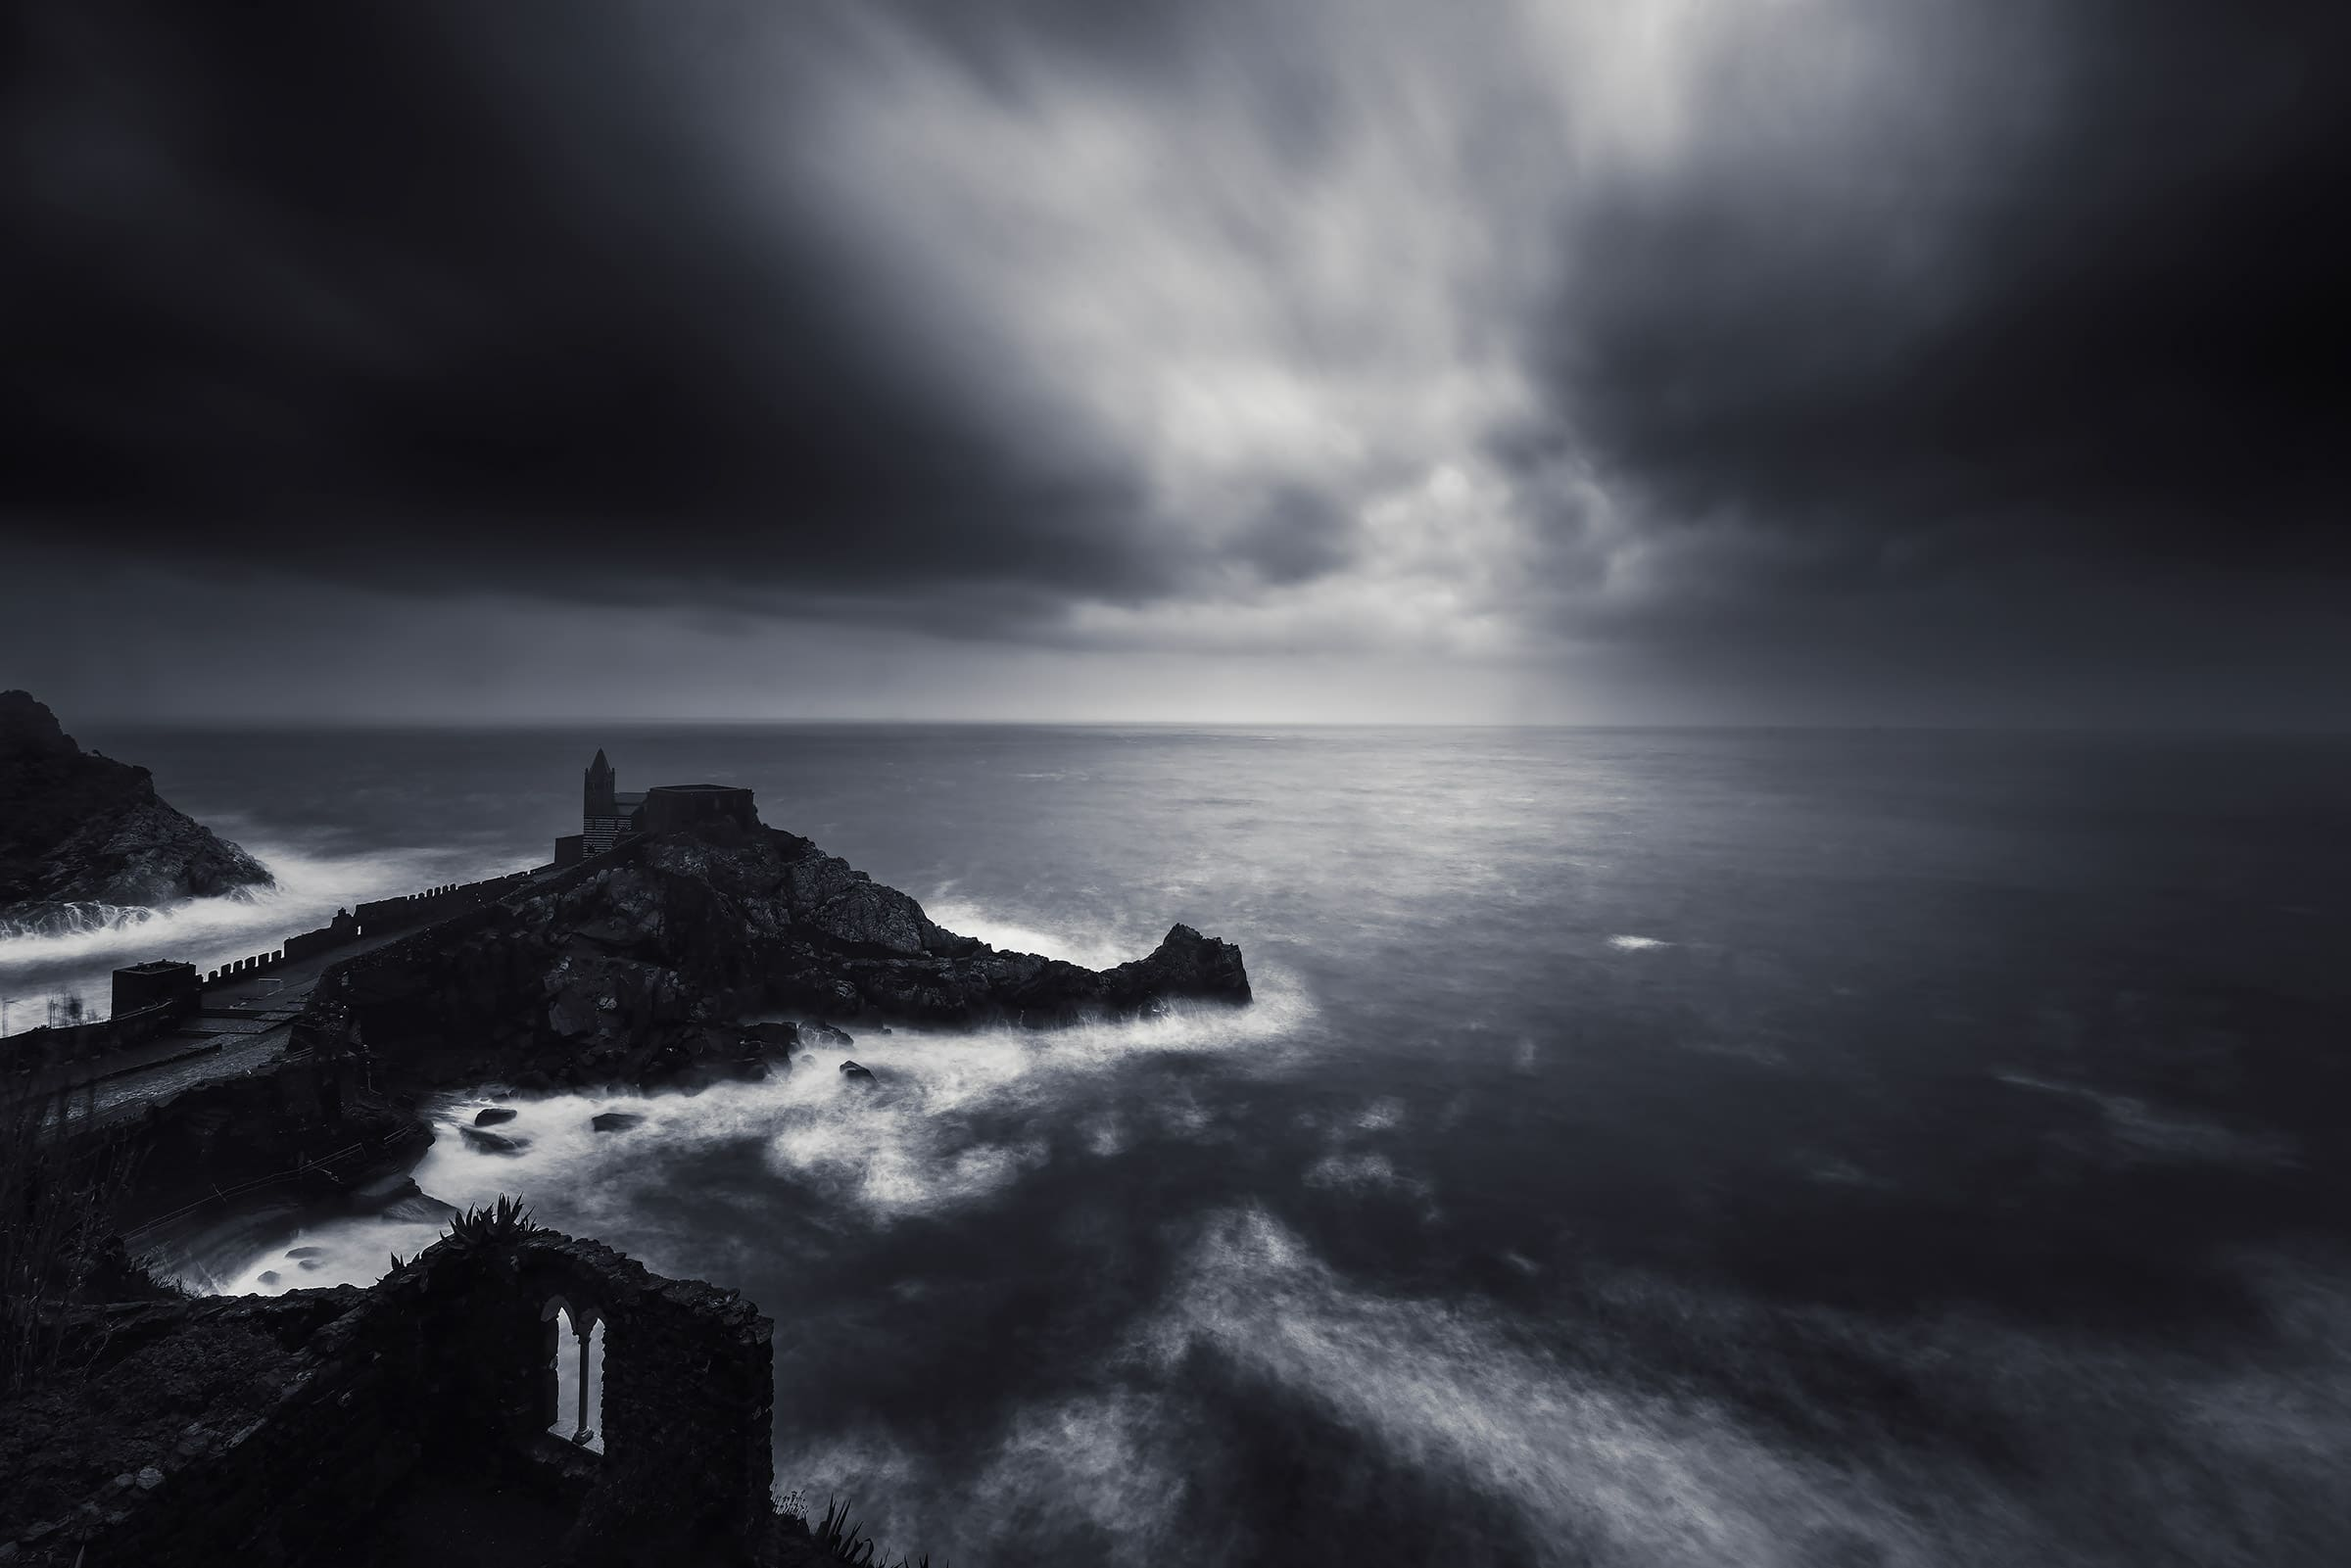 portovenere during a stormy day landscape pictures